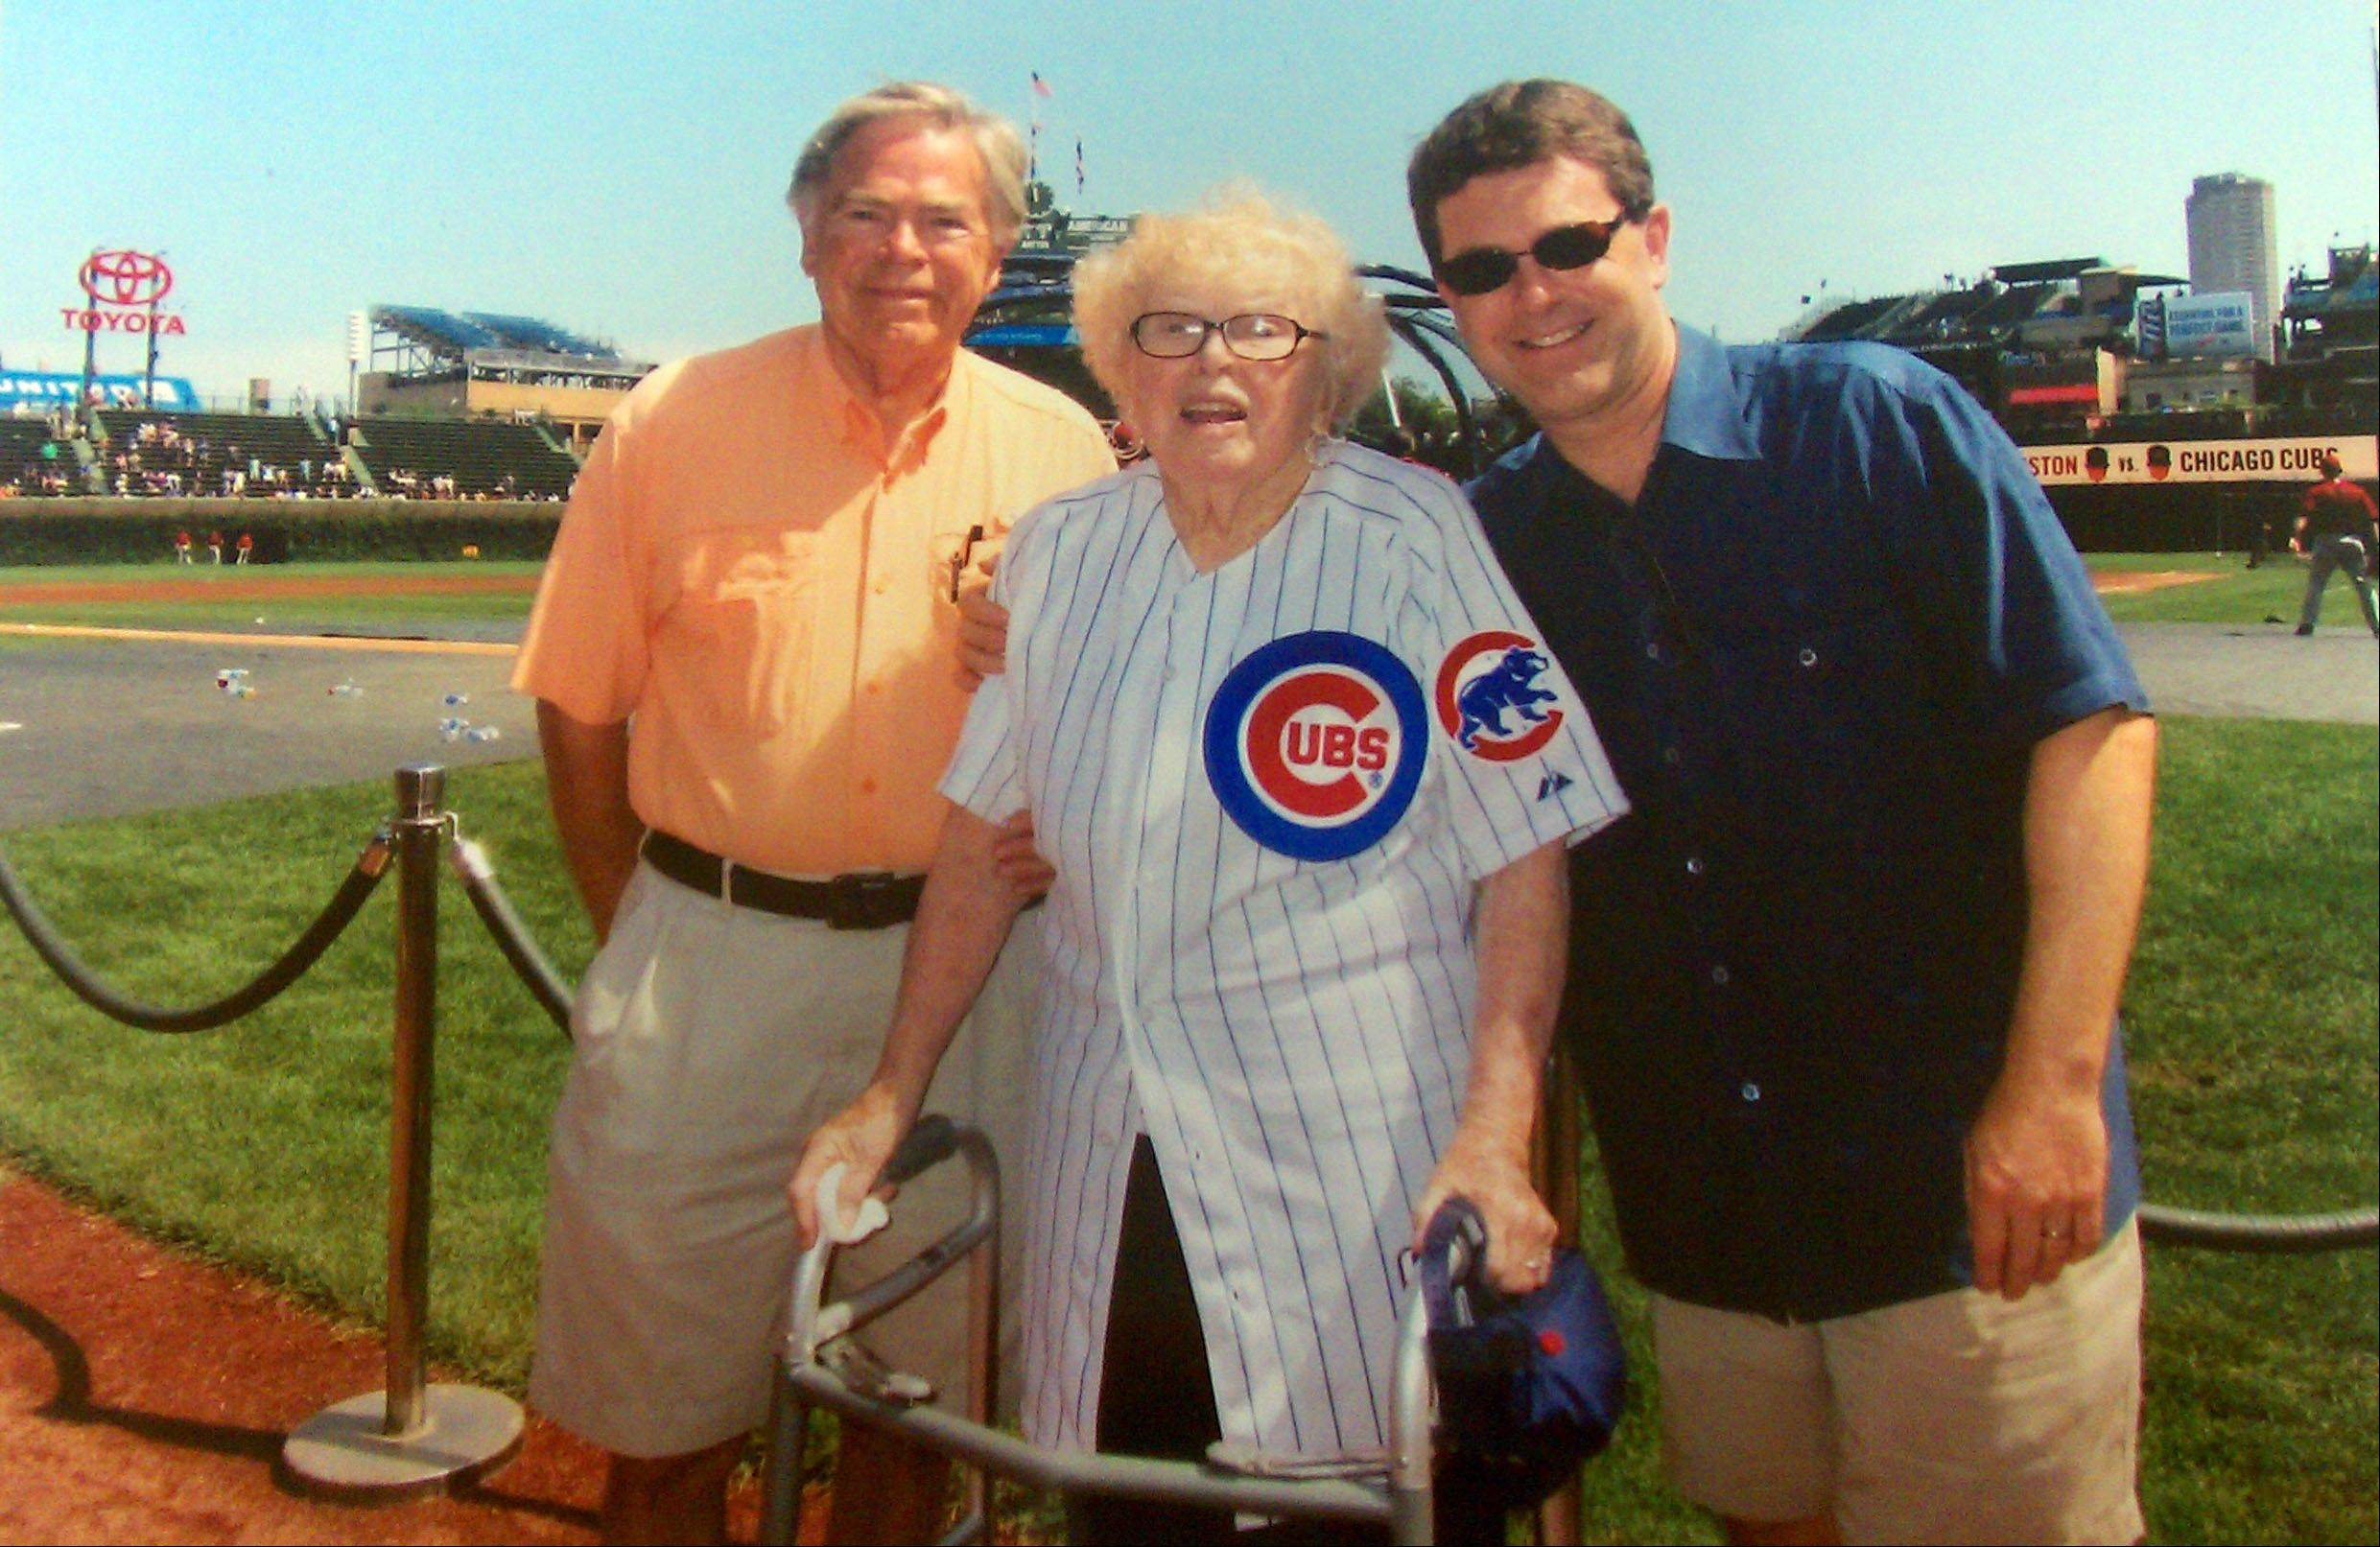 Alice Lundstrom spent her 106th birthday at Wrigley Field with her son, Carl, and her grandson, Brett. The Cubs gave her the special jersey she�s wearing. It has her name and the number 106 on the back.